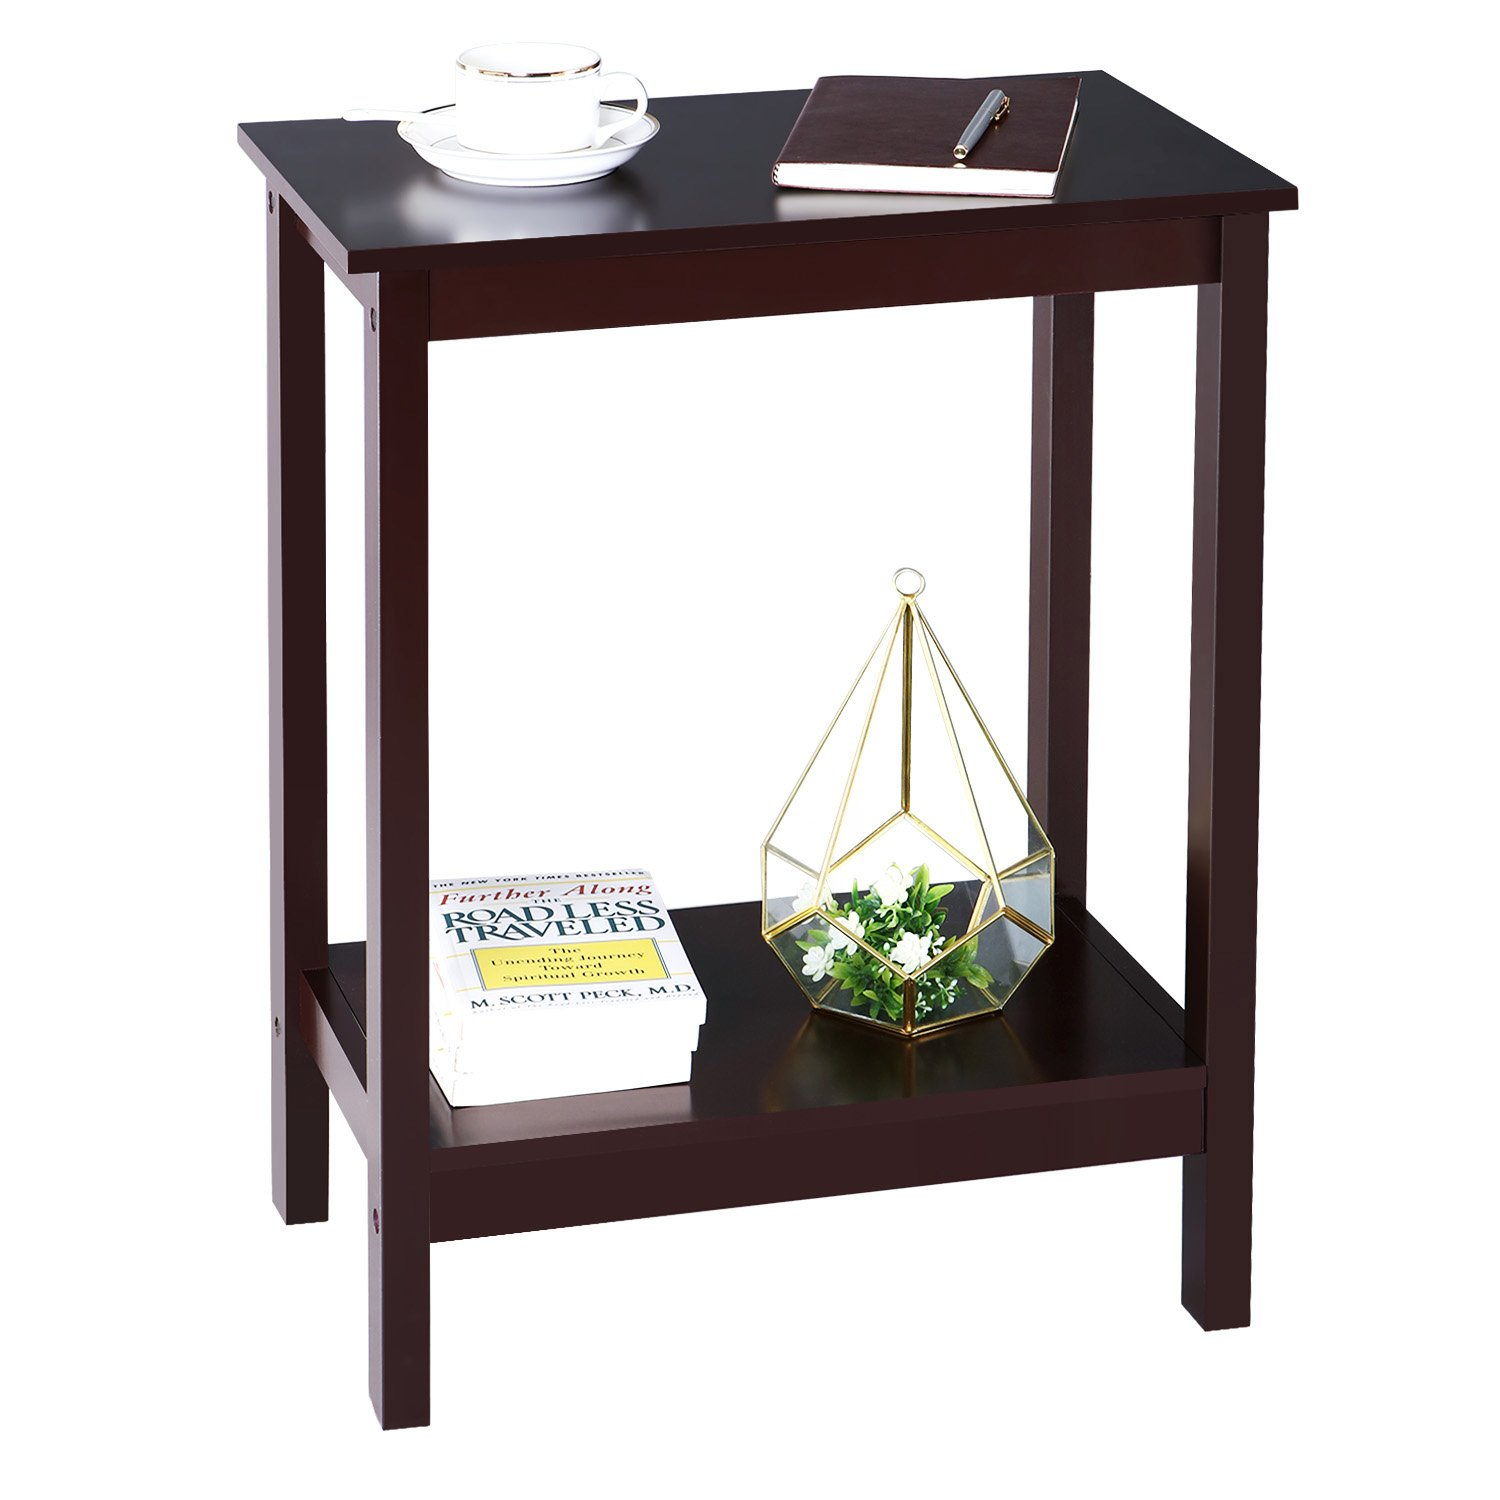 SONGMICS Narrow Side Table End Table Night Stand Bedsidetable with Sliding Drawer Storage for Kid's Room, Bedroom LIvingroom Brown ULET30BR